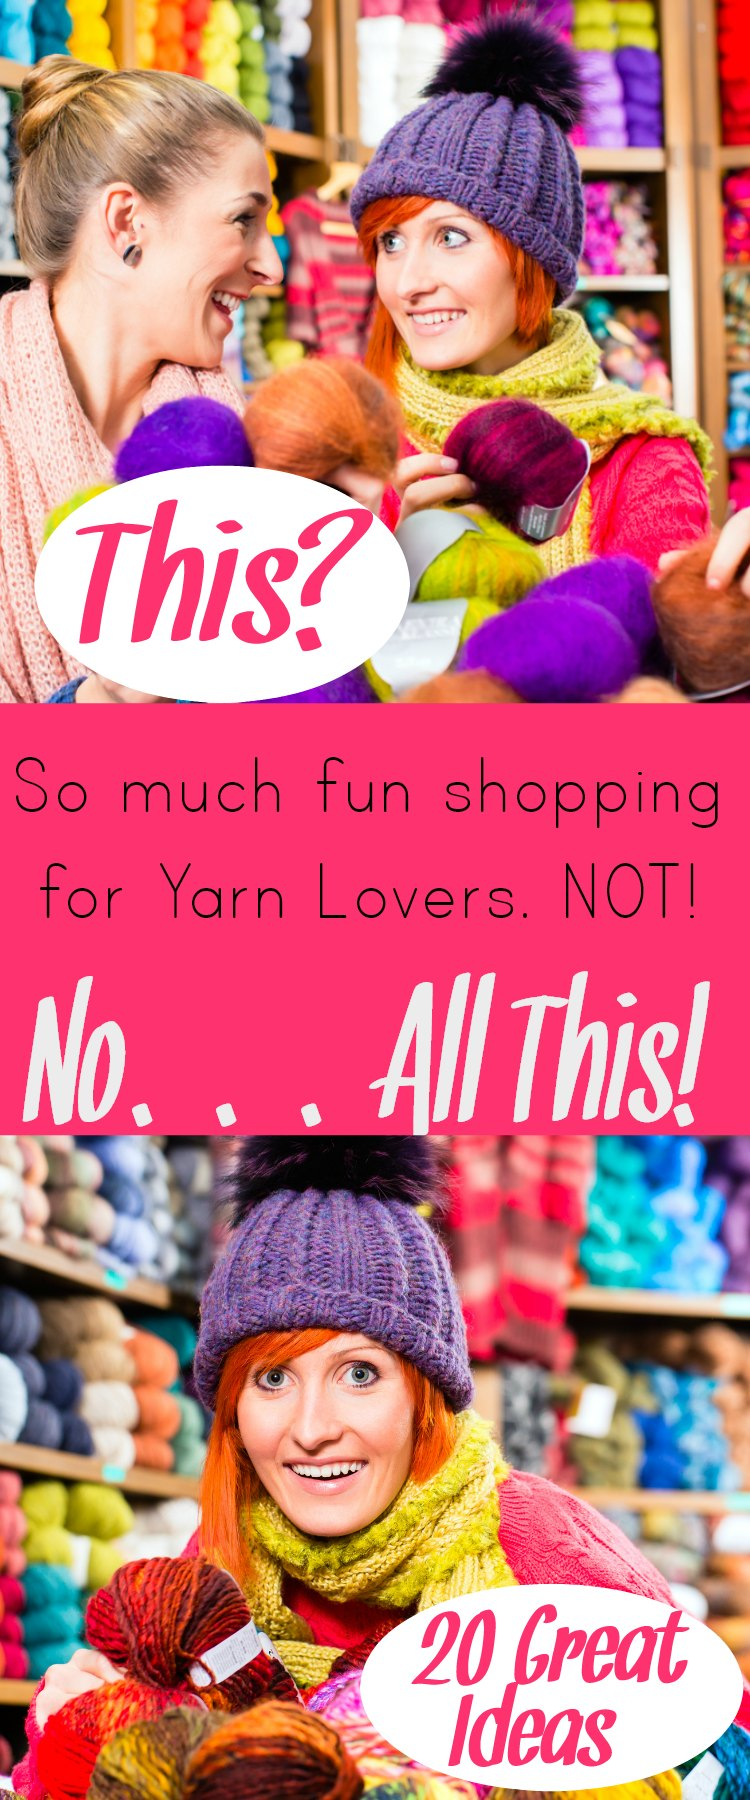 Shopping for Yarn Lovers